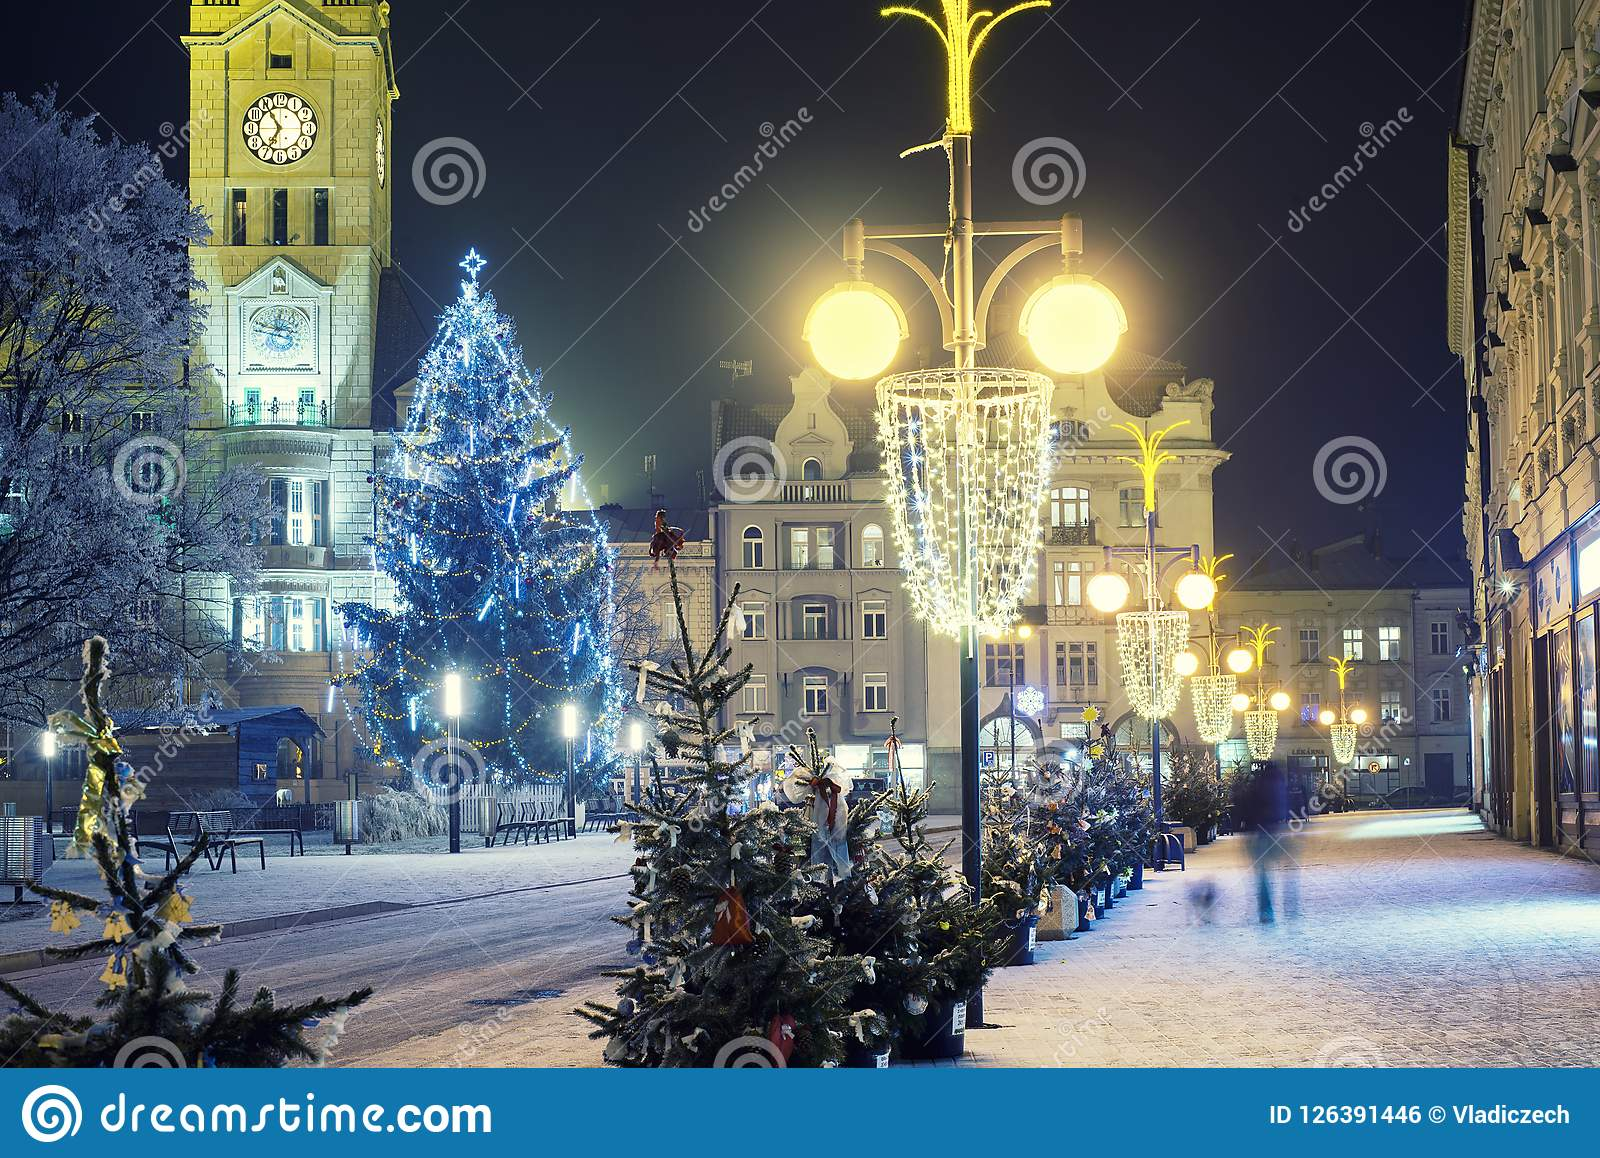 download empty christmas town with decorations and lights and the tree stock photo image - Christmas Town Decorations